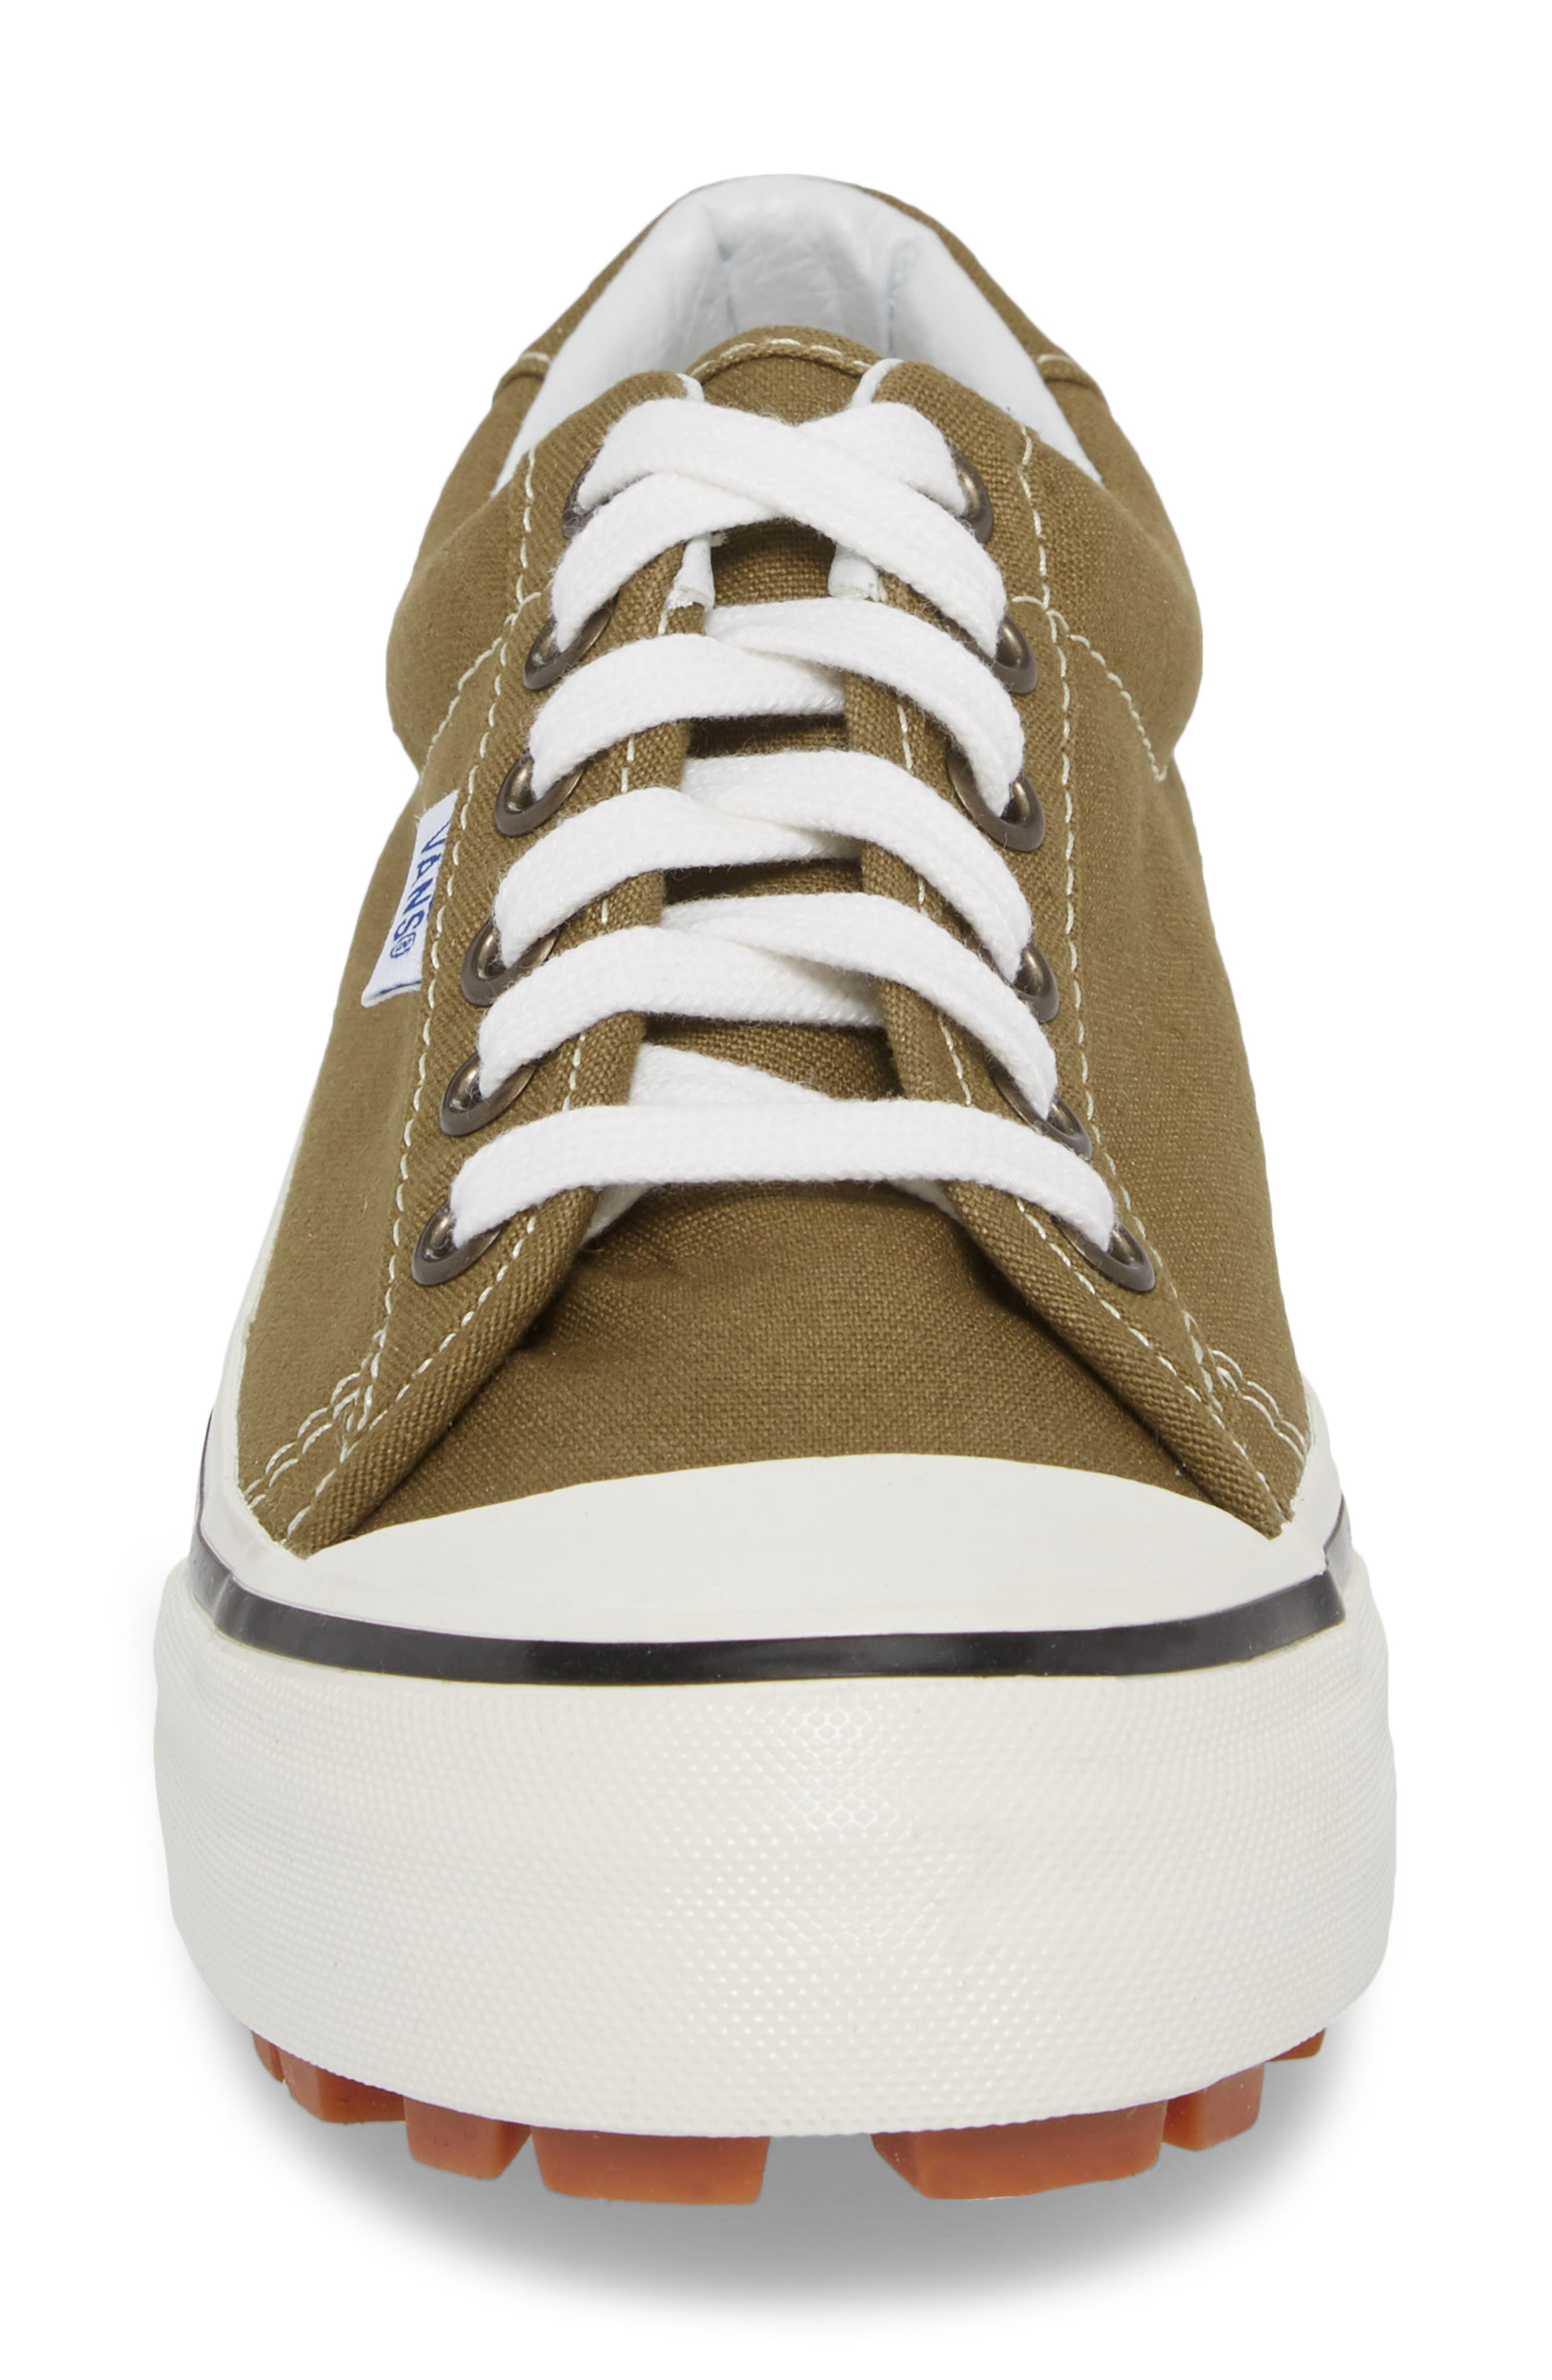 Anaheim Factory Style 29 DX Sneaker,                             Alternate thumbnail 4, color,                             Anaheim Factory Olive